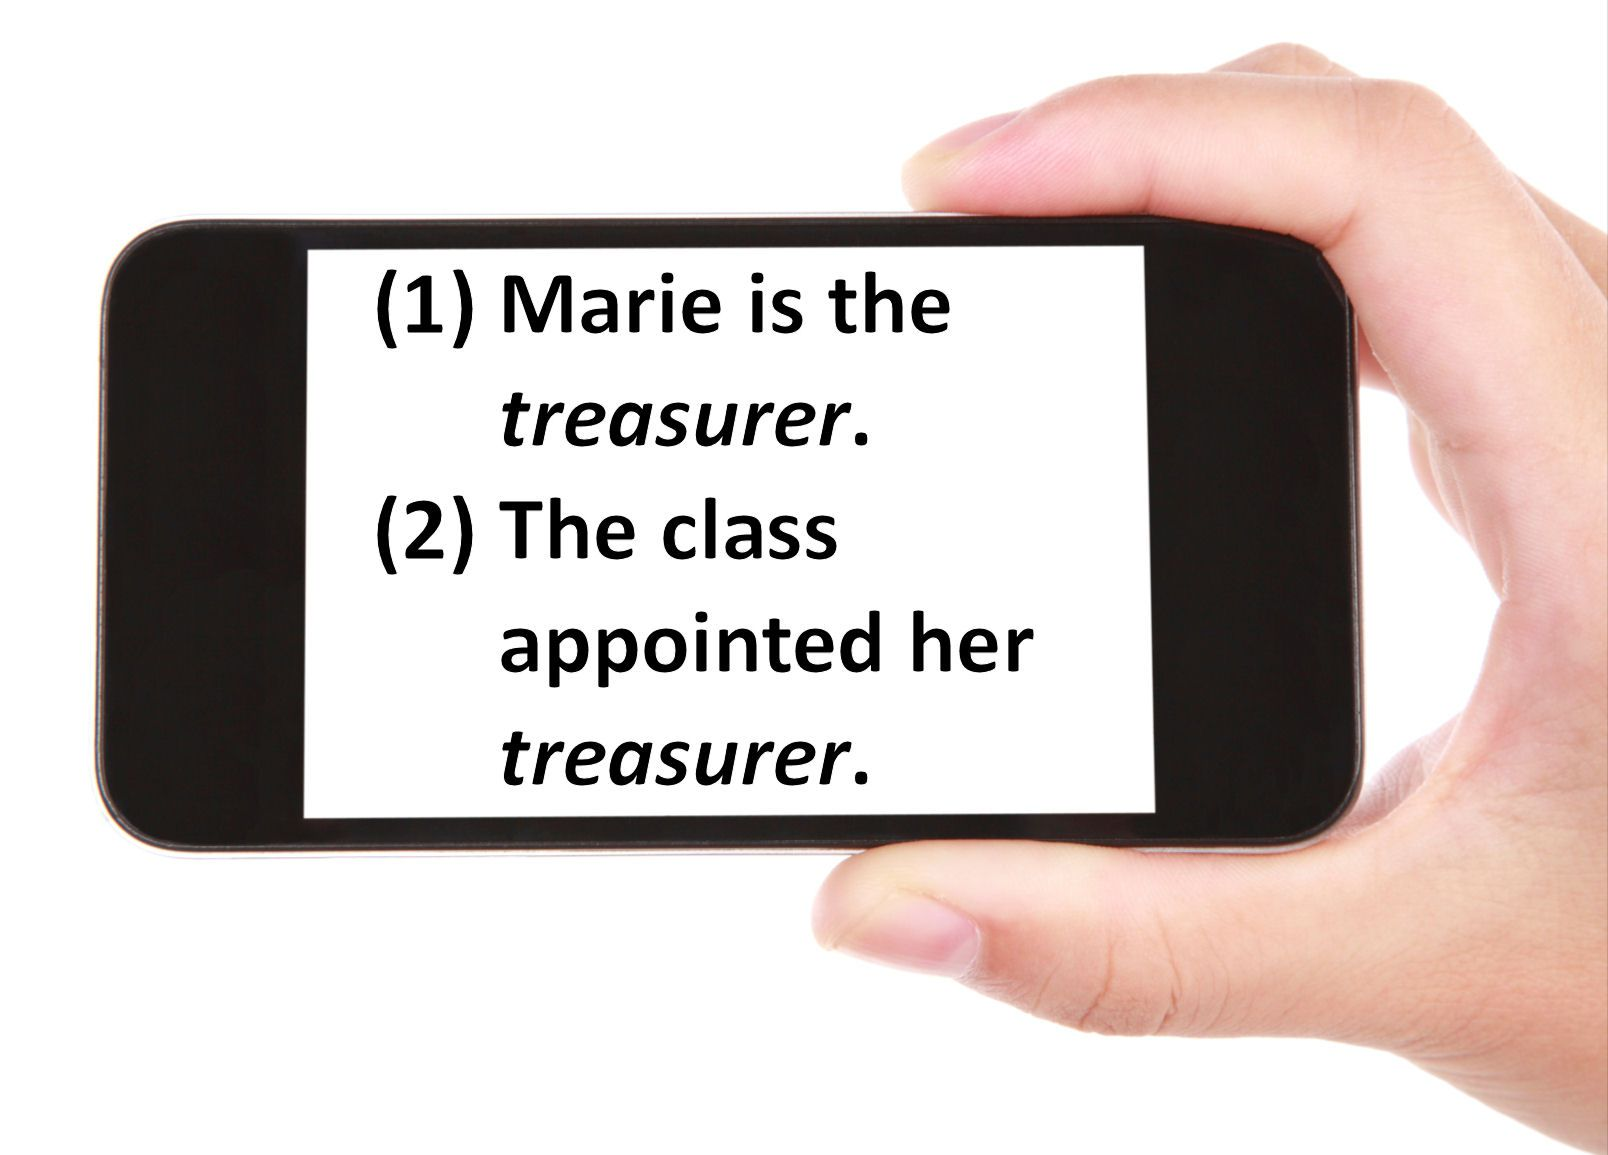 Practice Identifying Subject and Object Complements